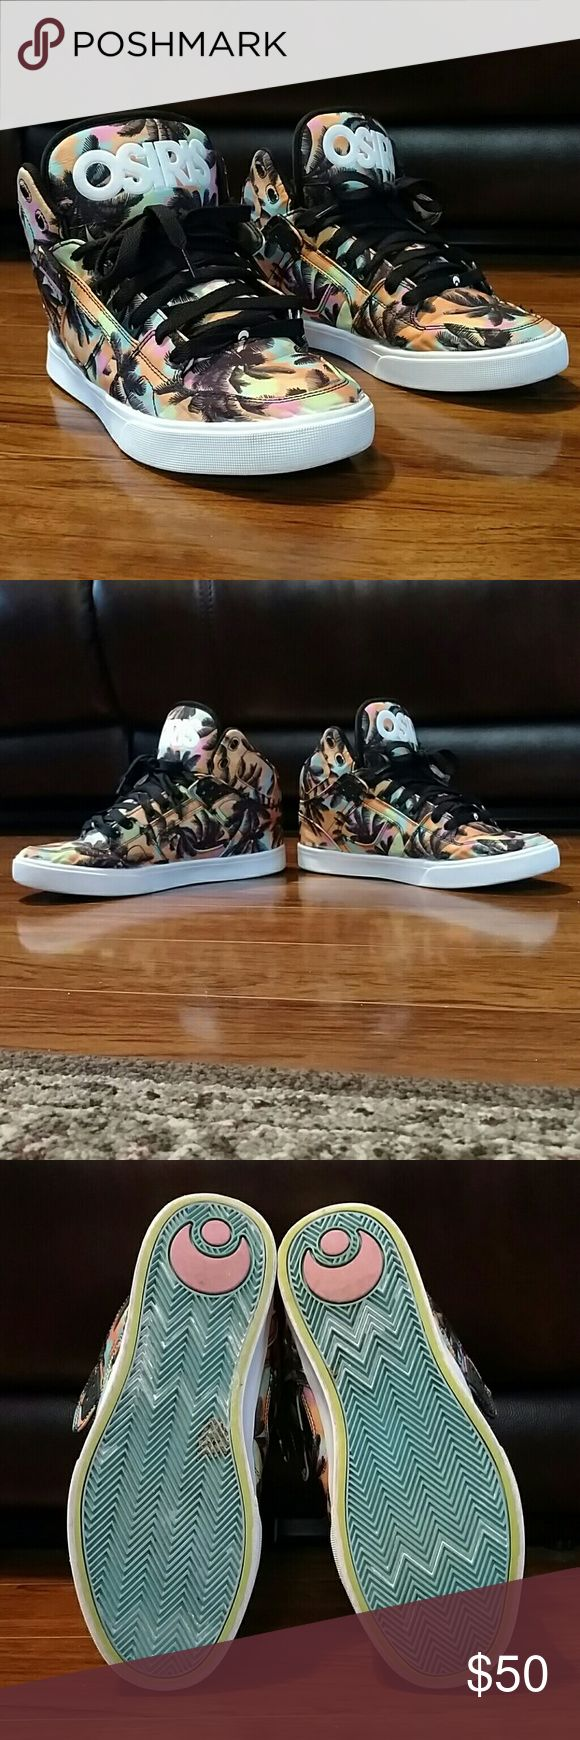 Osiris Palm Tree Shoes - Osiris Shoes with Palm Tree Print - Model: NYC 83 VULC - Excellent Condition / Barely Worn - Size: 10 Osiris Shoes